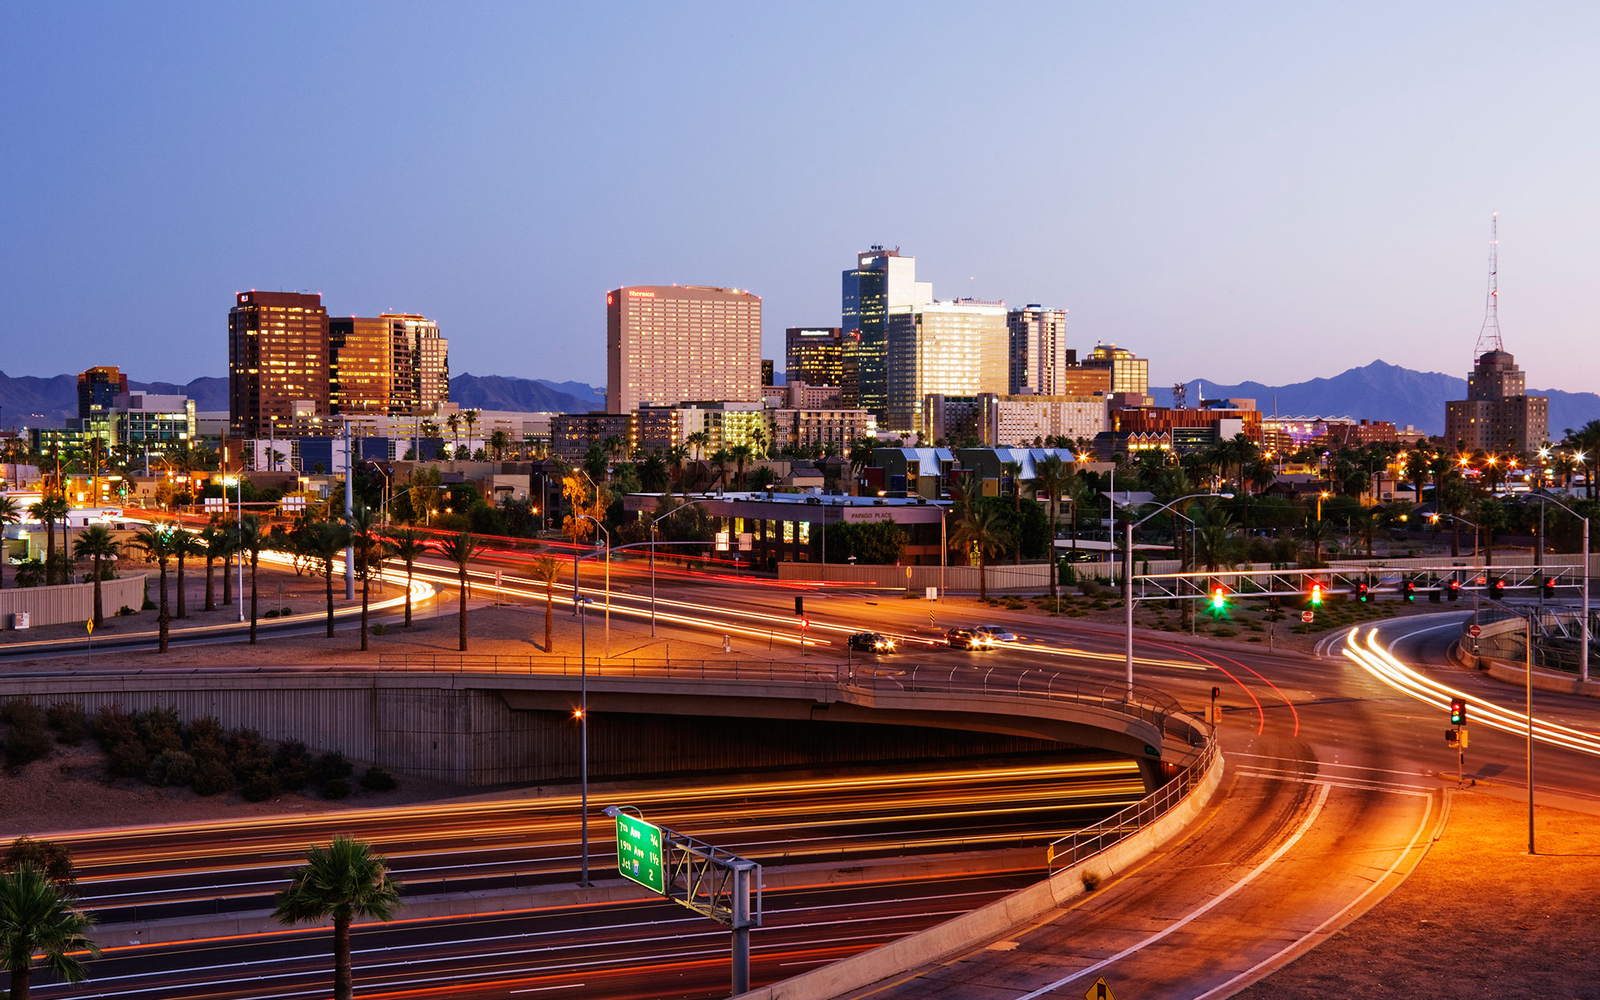 downtown Phoenix/Scottsdale at night, Arizona